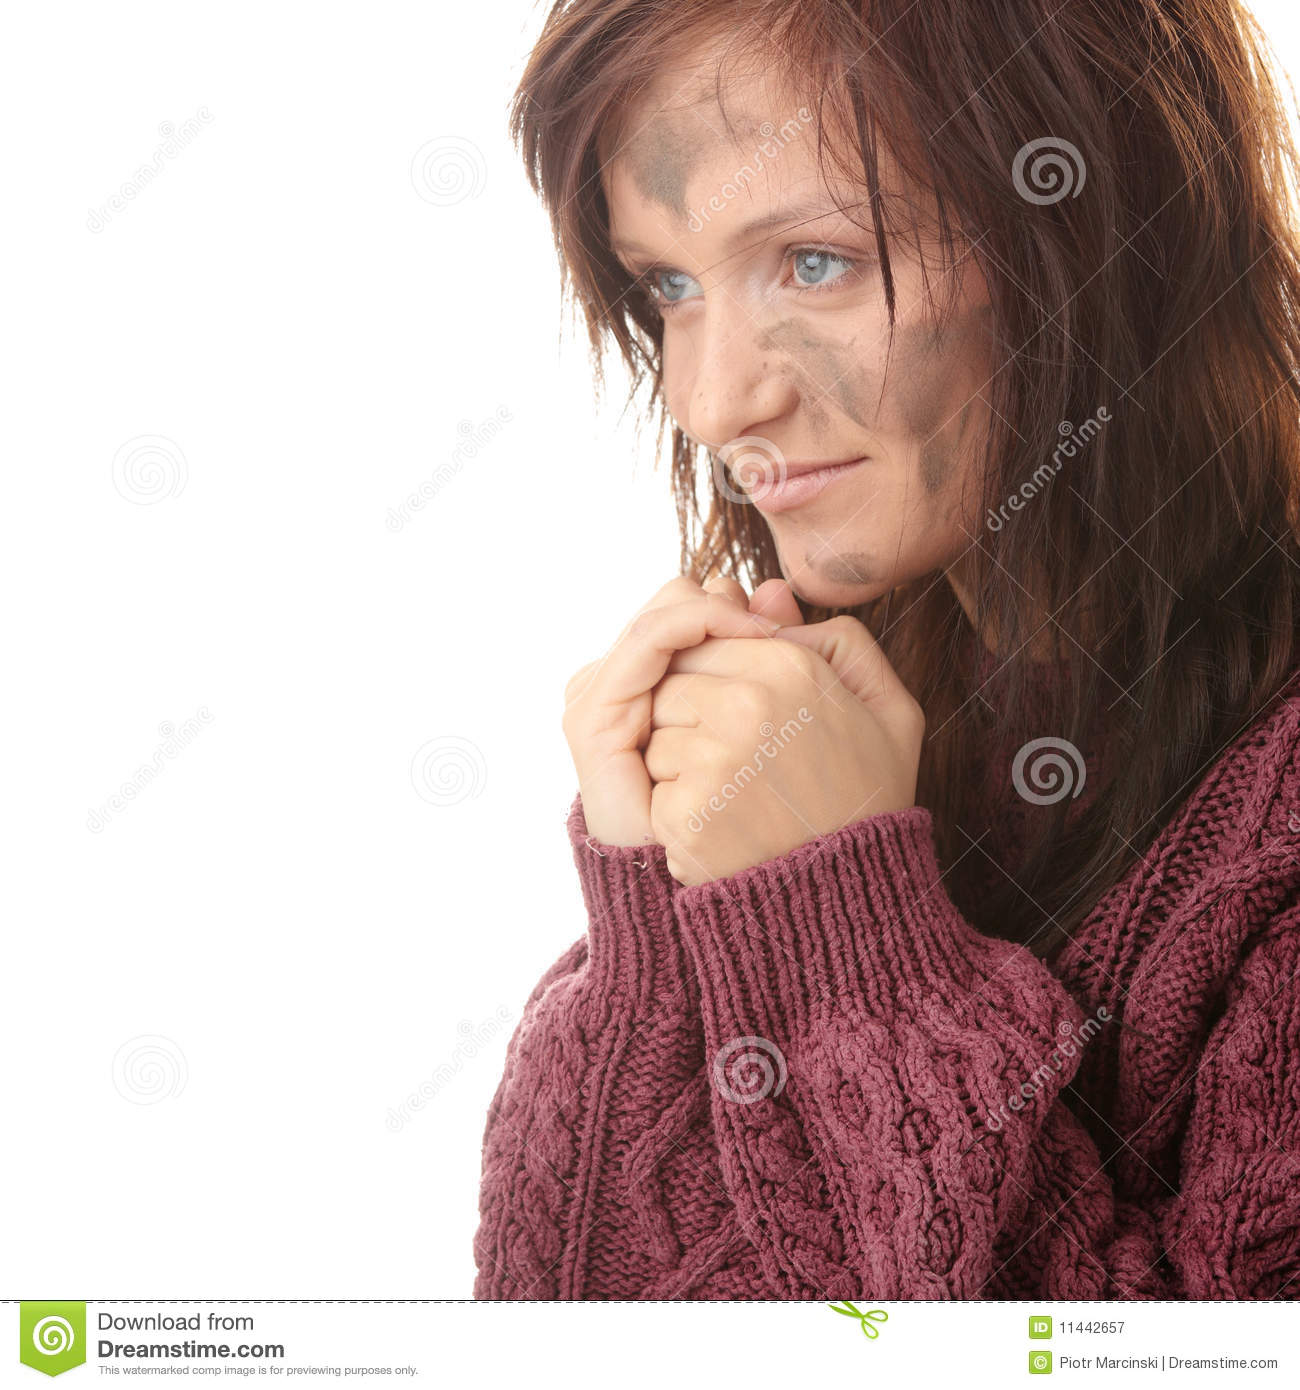 Poor Woman Royalty Free Stock Photography - Image: 11442657